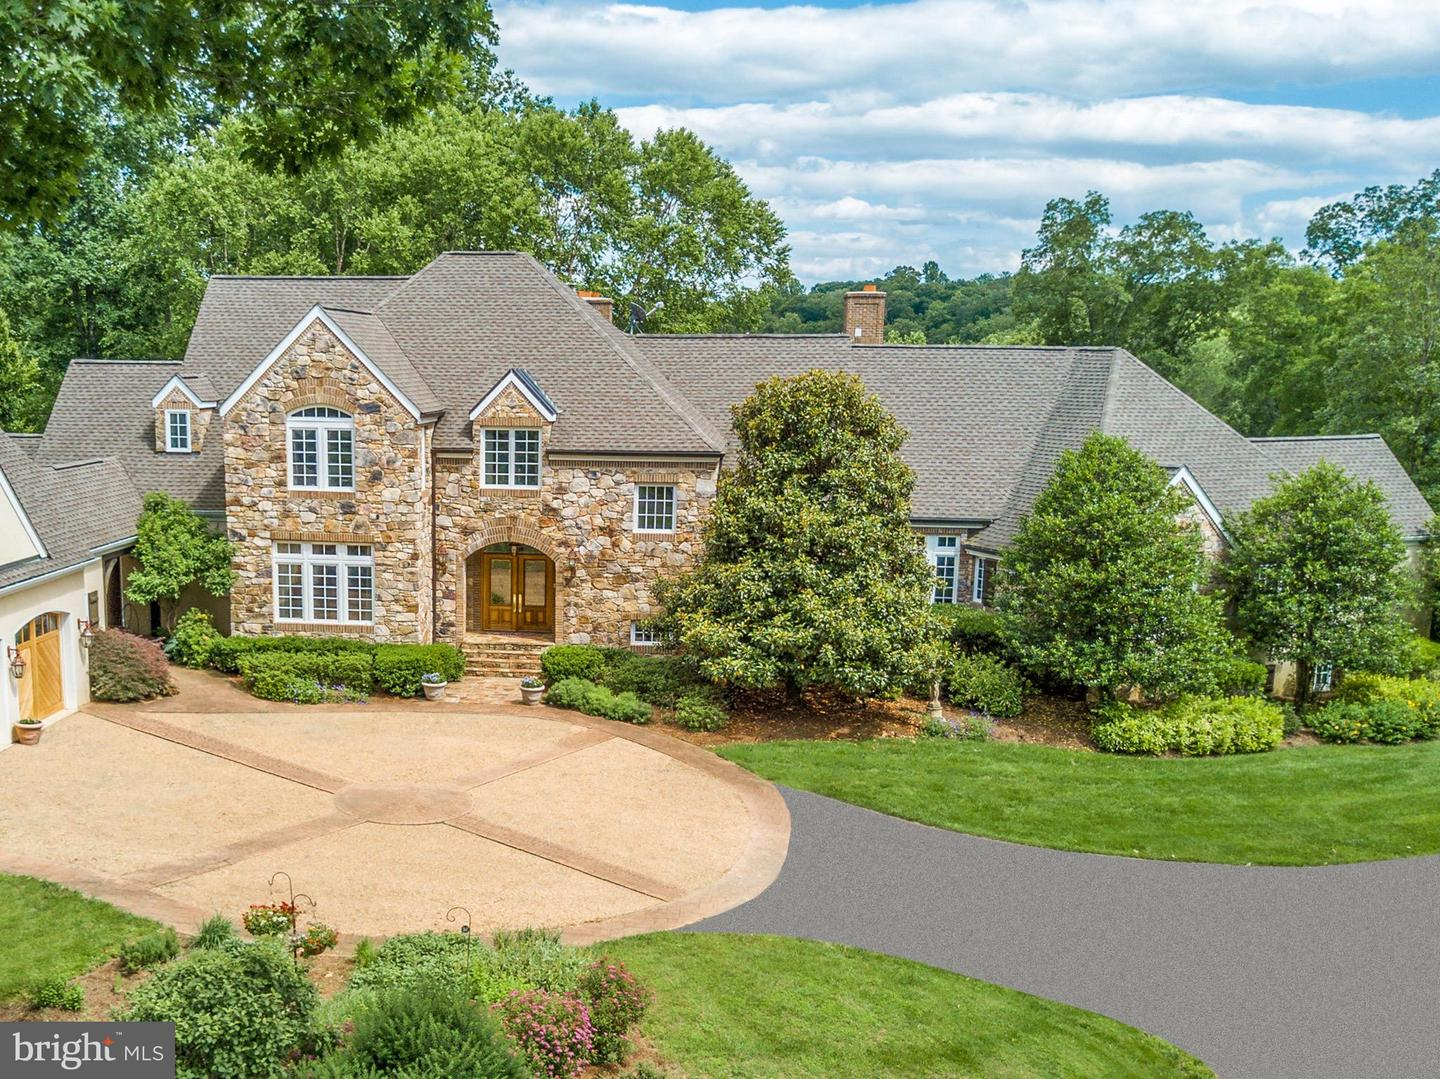 Single Family for Sale at 1679 North Poes Rd Flint Hill, Virginia 22627 United States